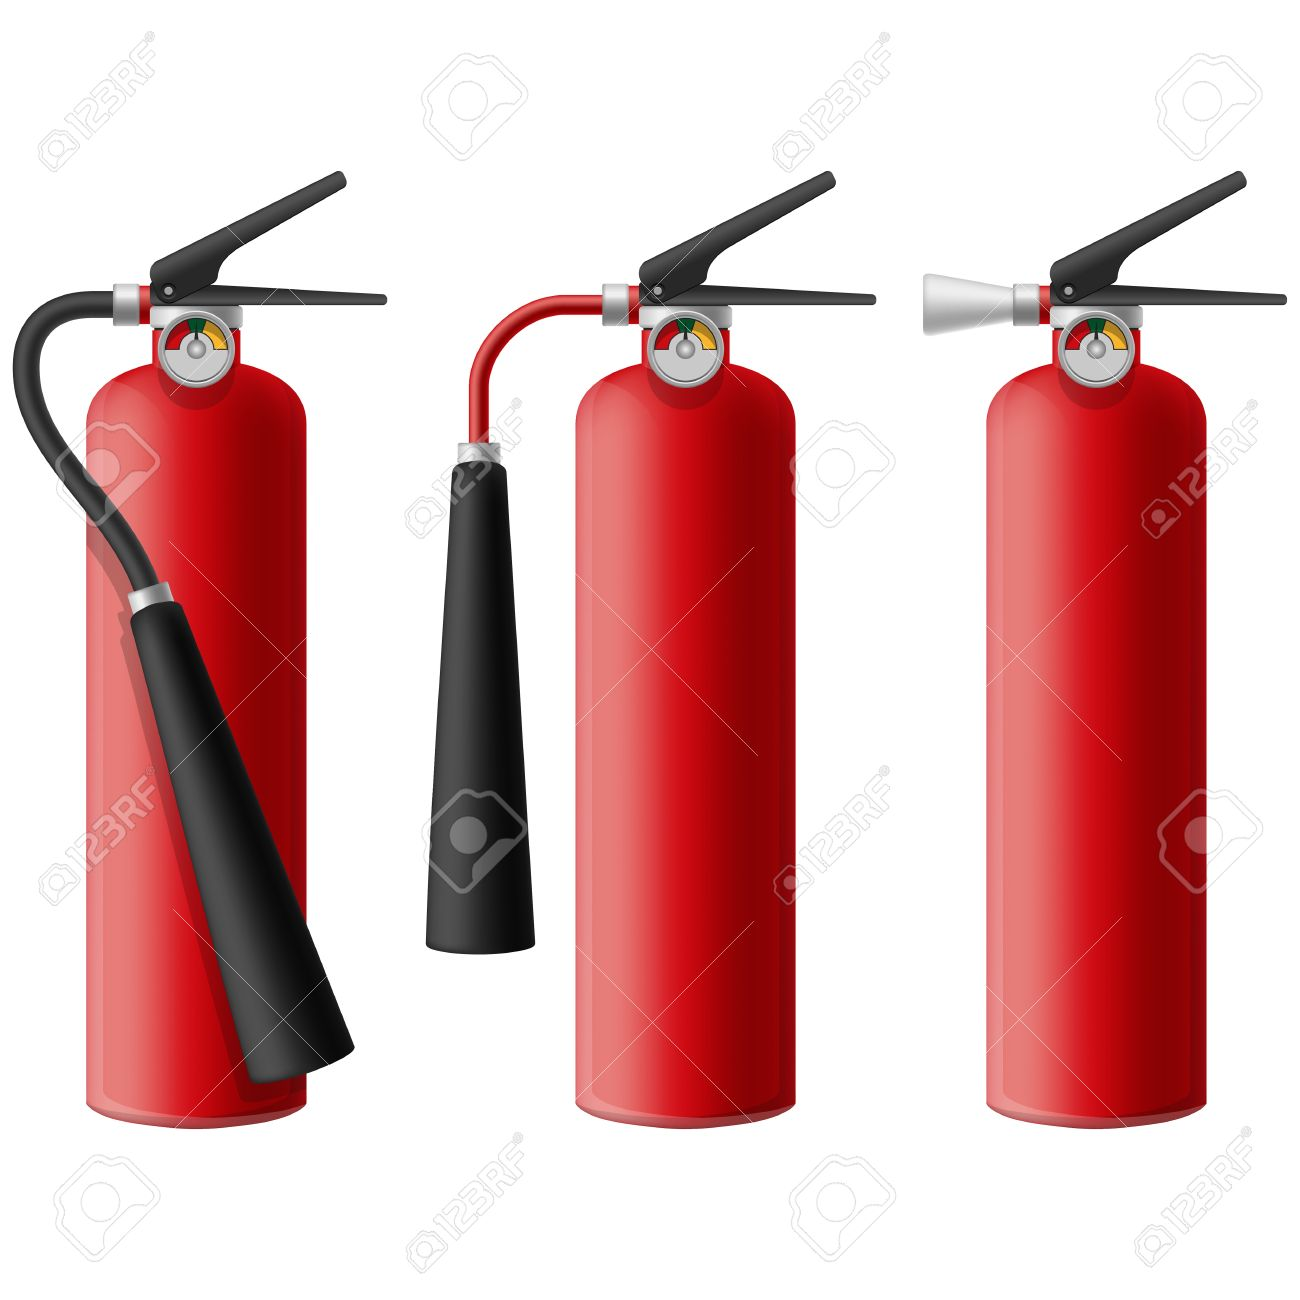 Layered Illustration Of Fire Extinguisher. Royalty Free Cliparts.